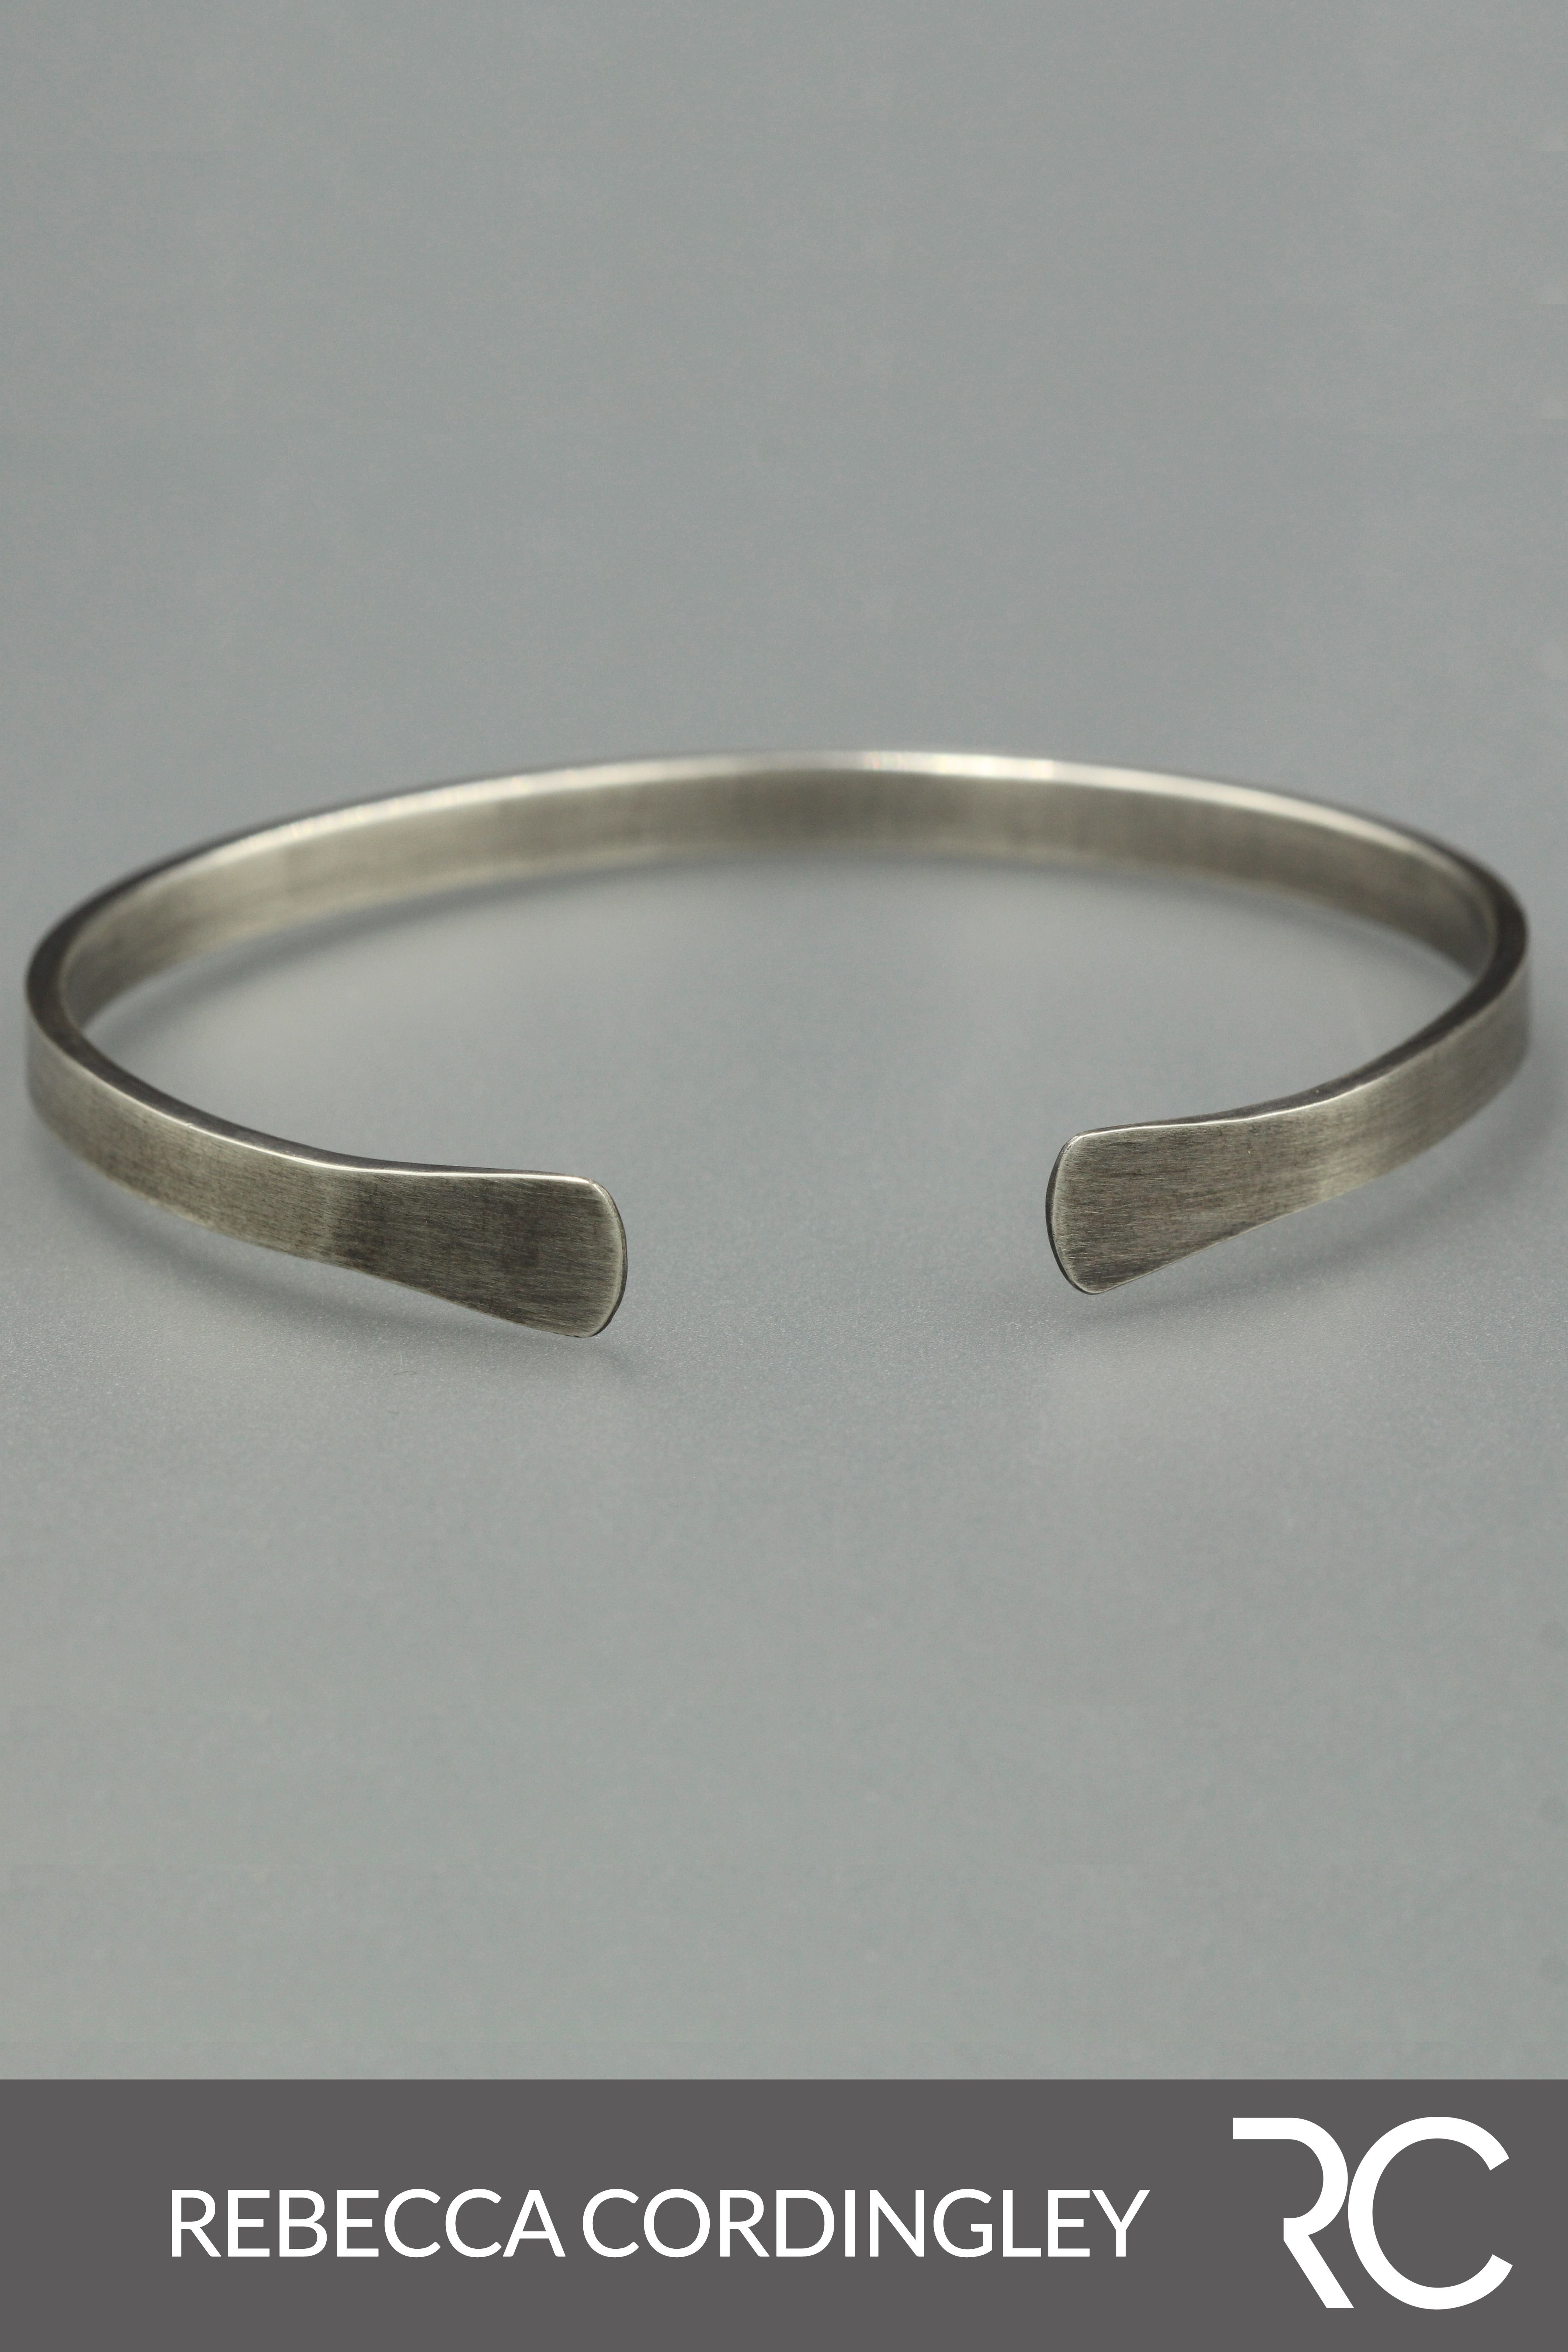 5224b4efa Cuff Bracelets Silver Handmade Jewelry on Etsy. Mens Bracelet Silver.  Rustic Jewellery Simple. A solid sterling silver cuff bracelet with splayed  ends.